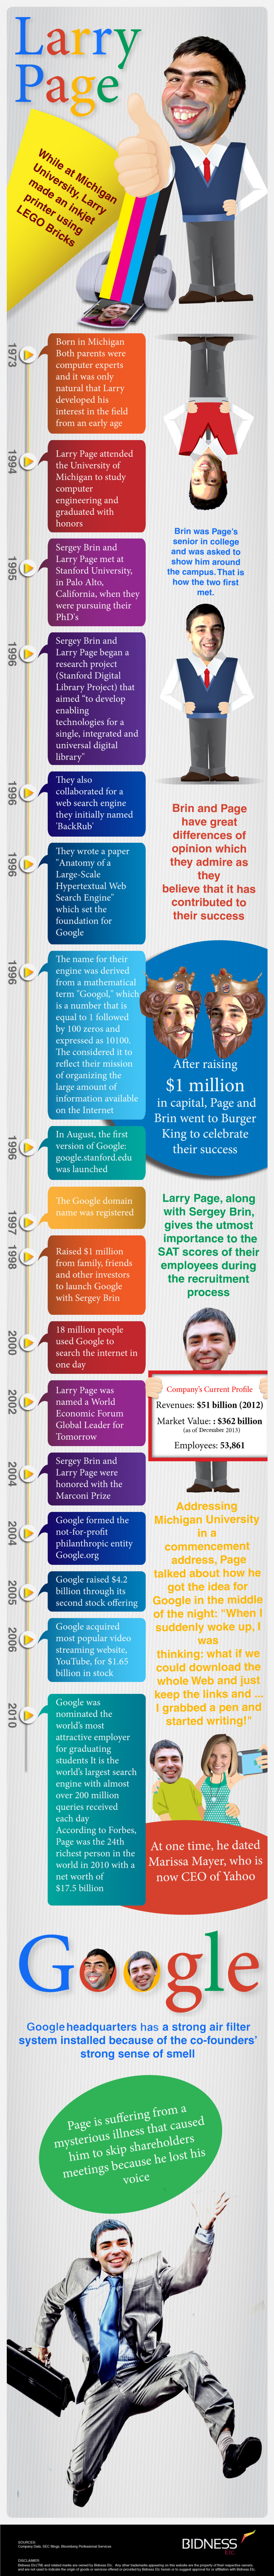 The Genius of Larry Page - Bidness Etc Infographic